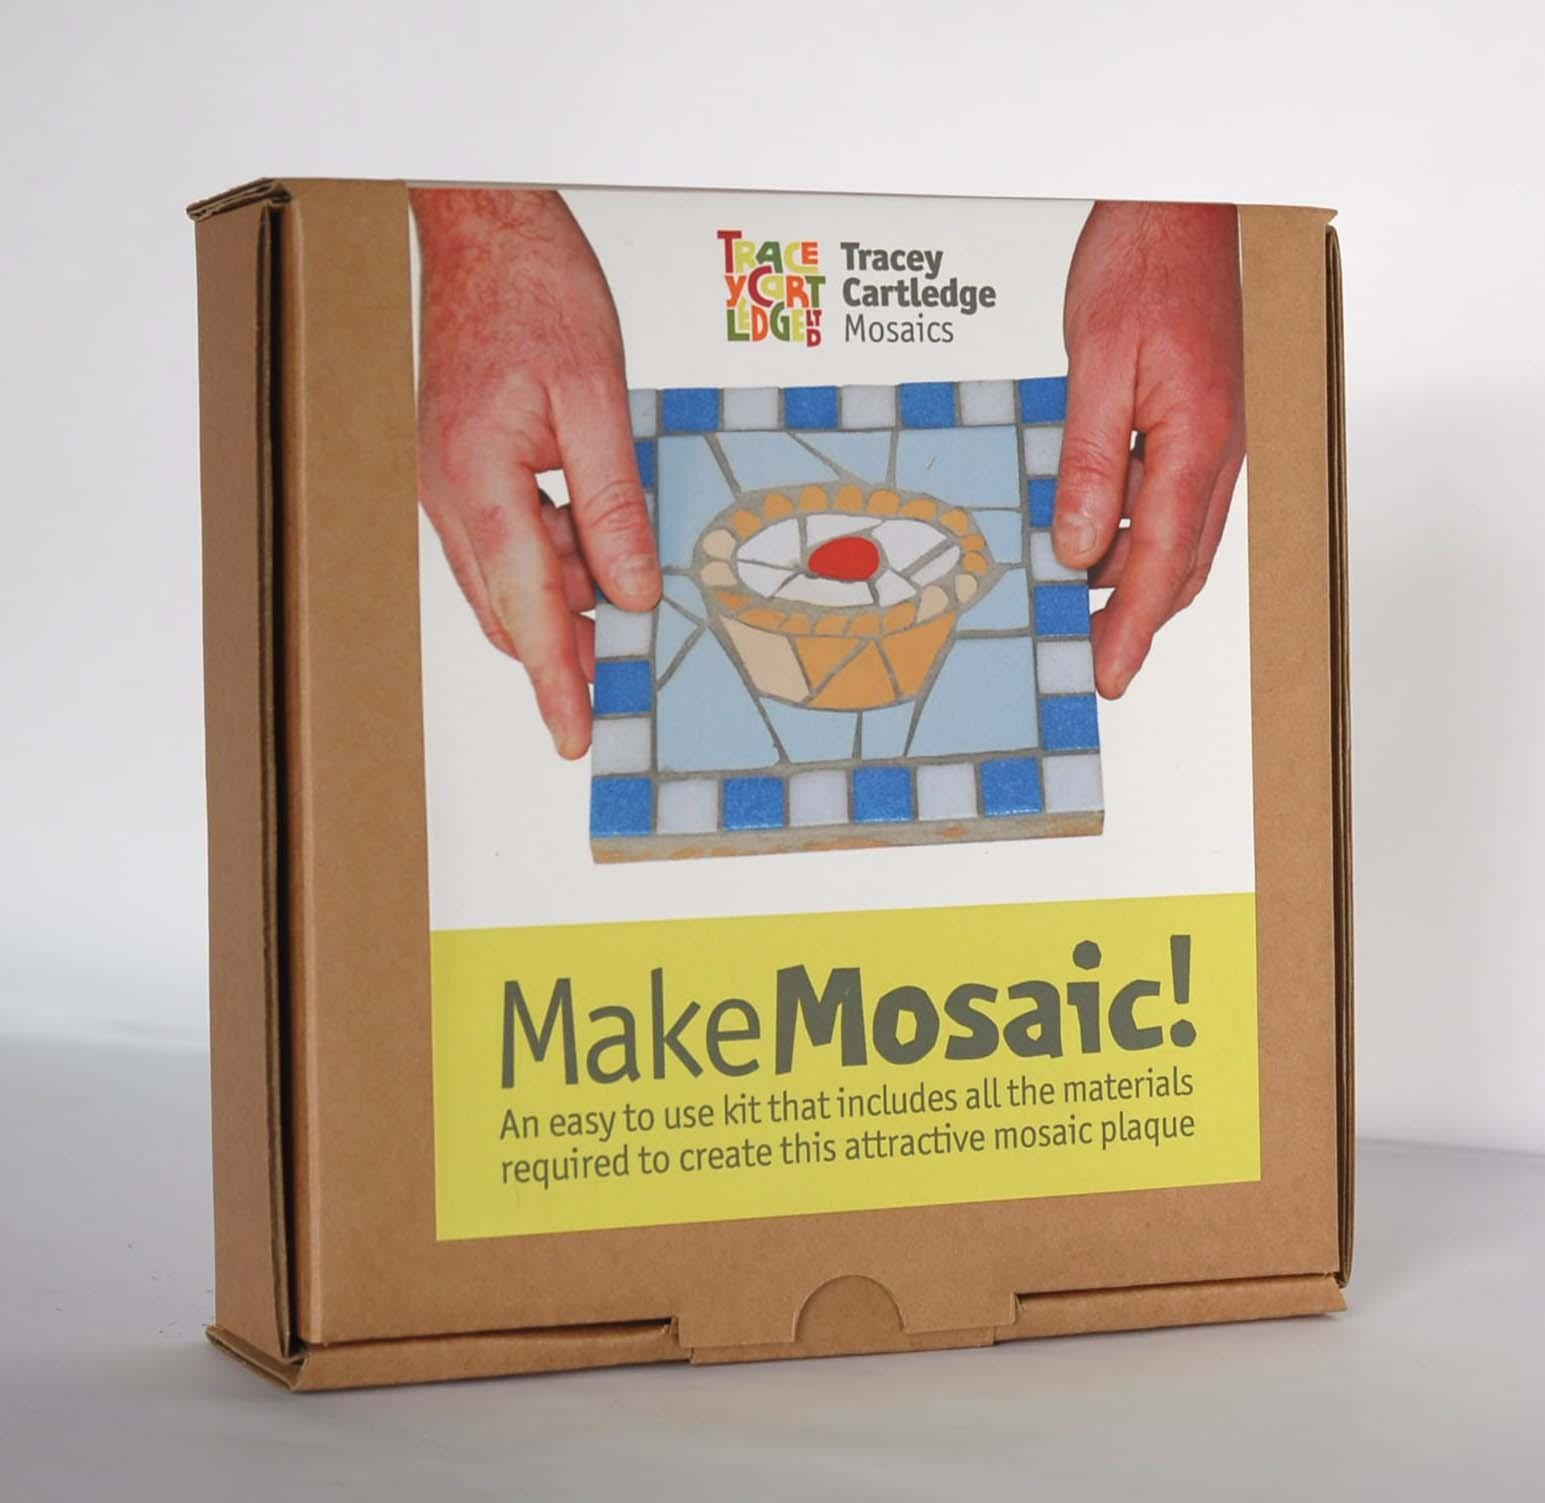 Makemosaic The Kits | Tracey Cartledge Artist Pertaining To Mosaic Art Kits For Adults (View 5 of 20)